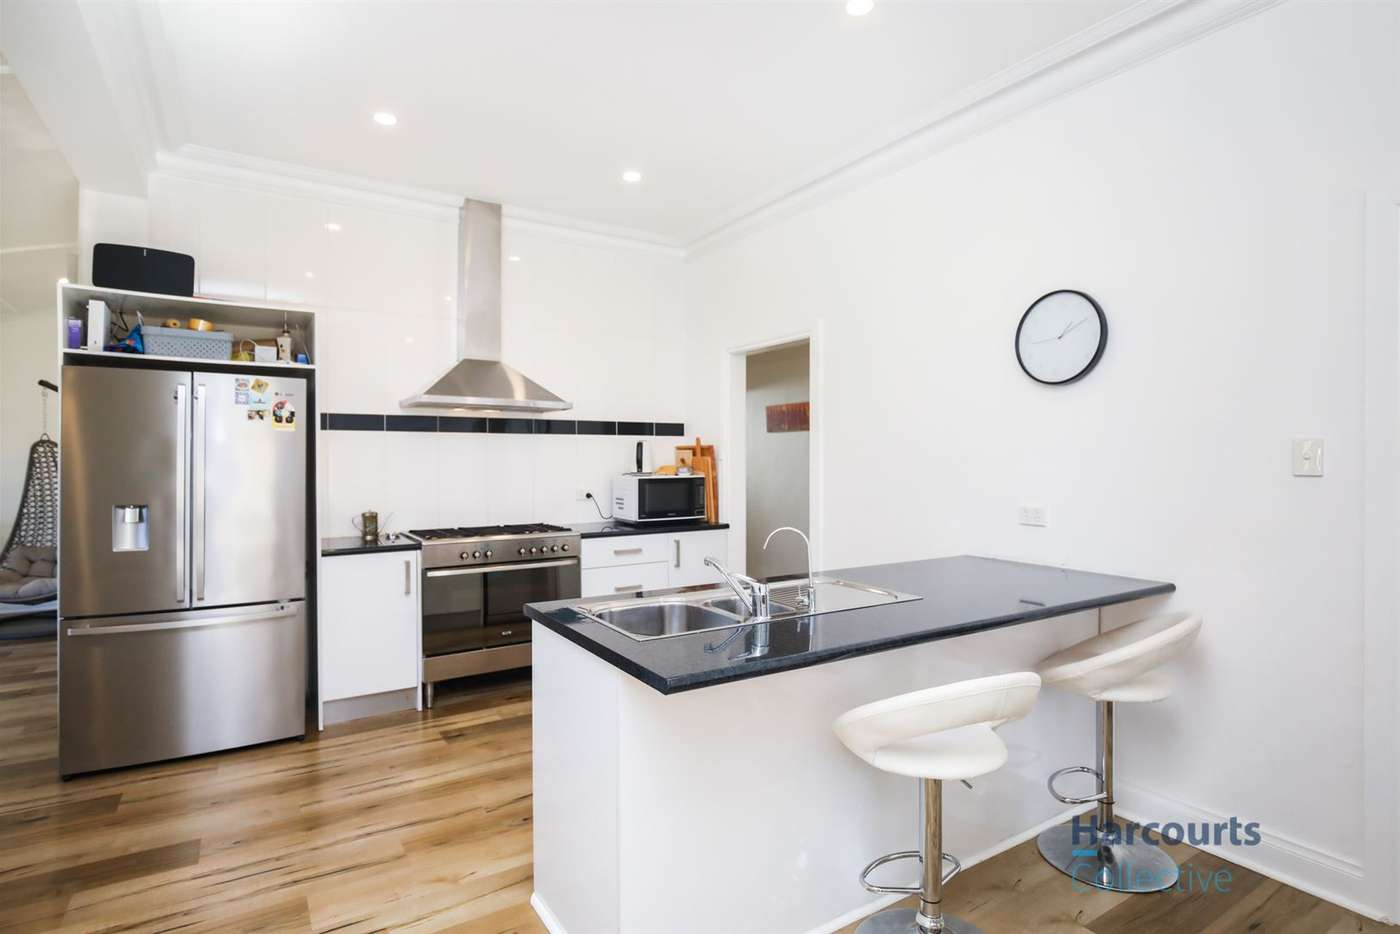 Sixth view of Homely house listing, 535 Goodwood Road, Colonel Light Gardens SA 5041